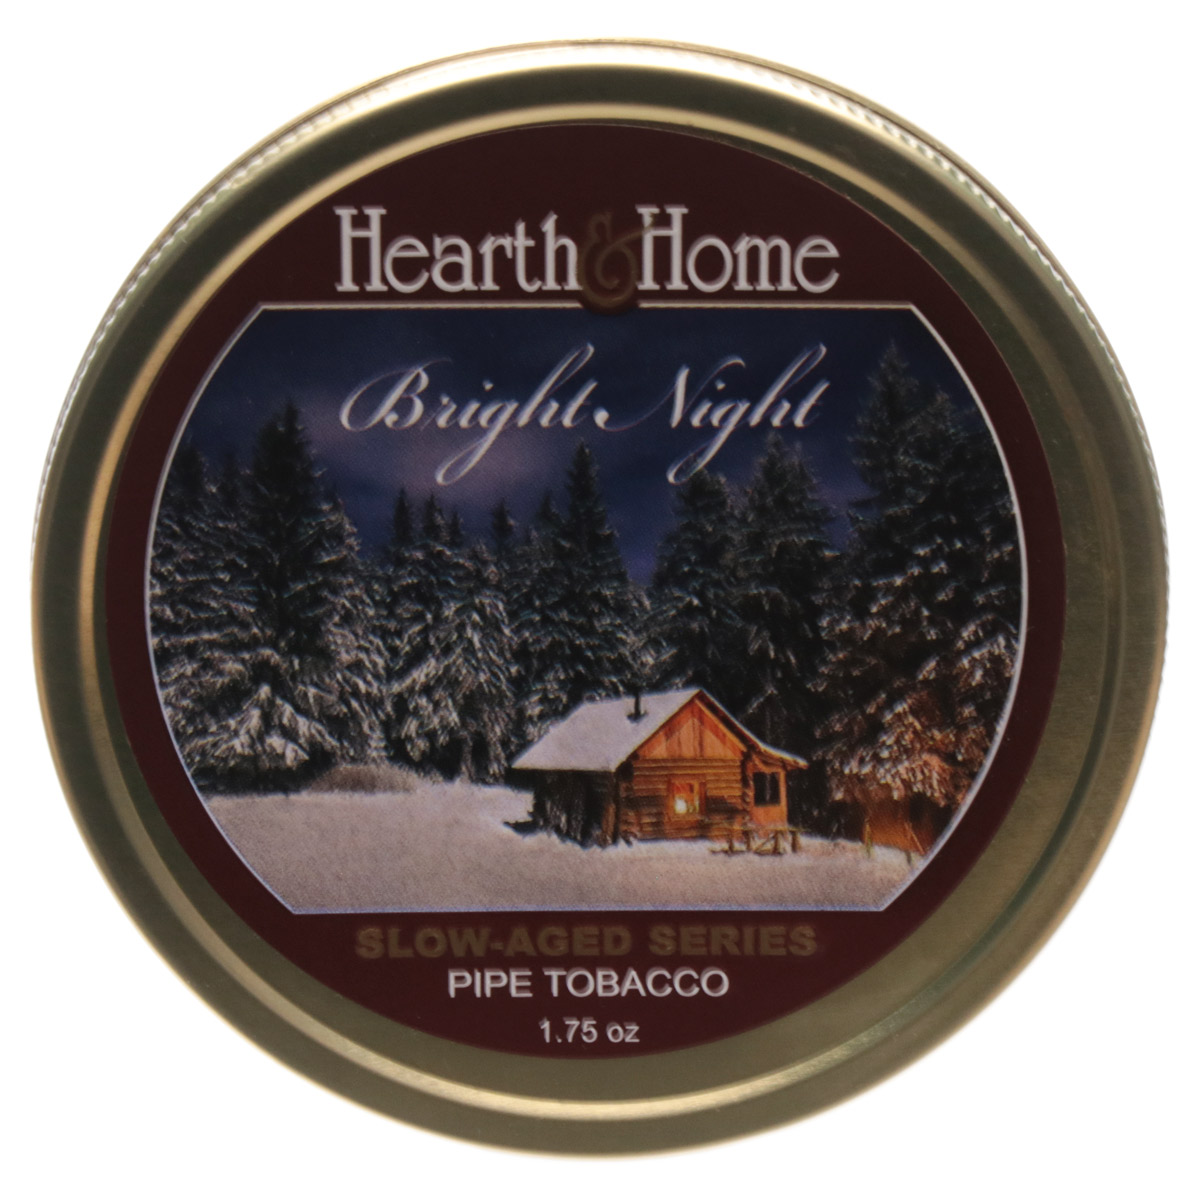 Hearth and Home Slow-Aged Bright Night 1.75oz